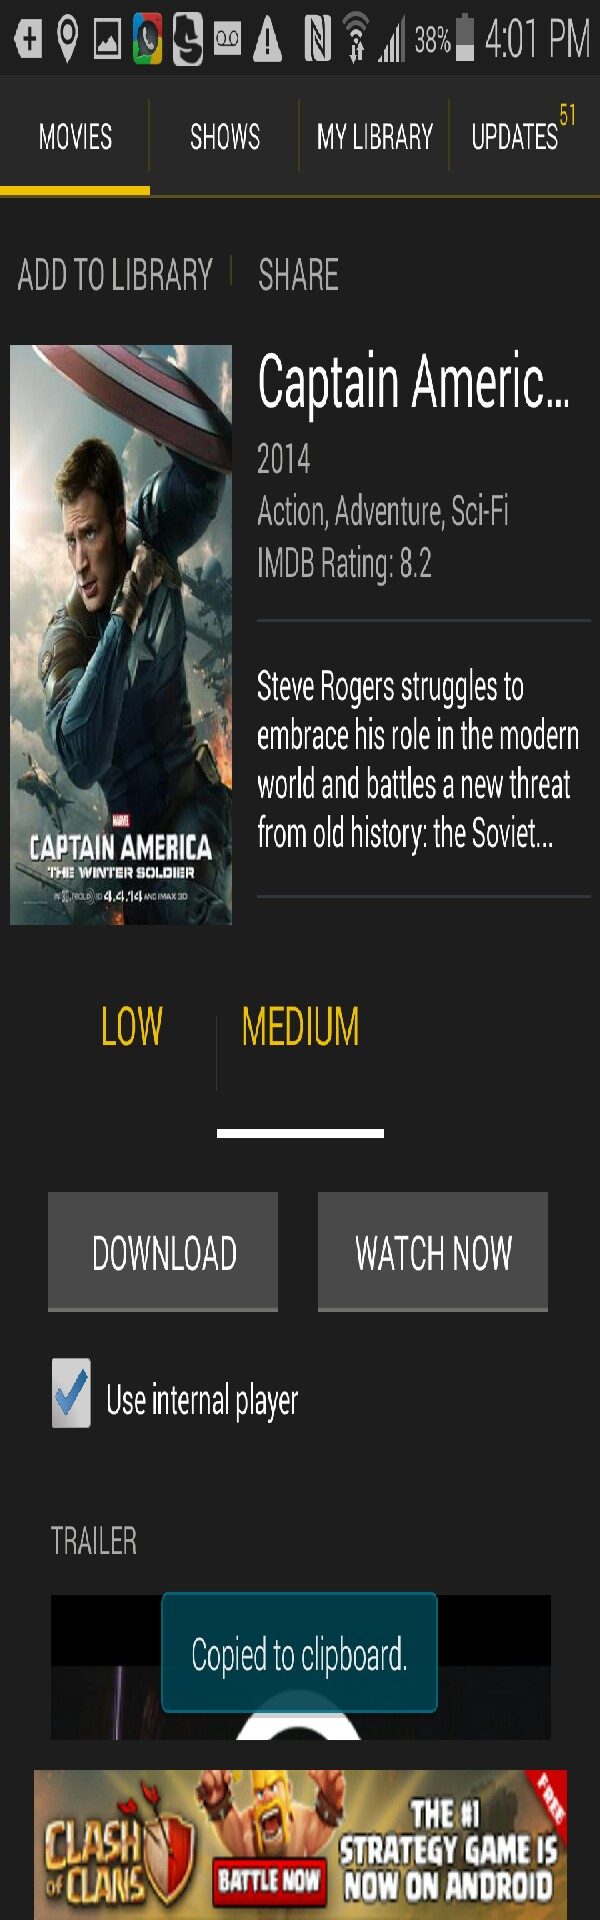 you will have the option of downloading or to watch now